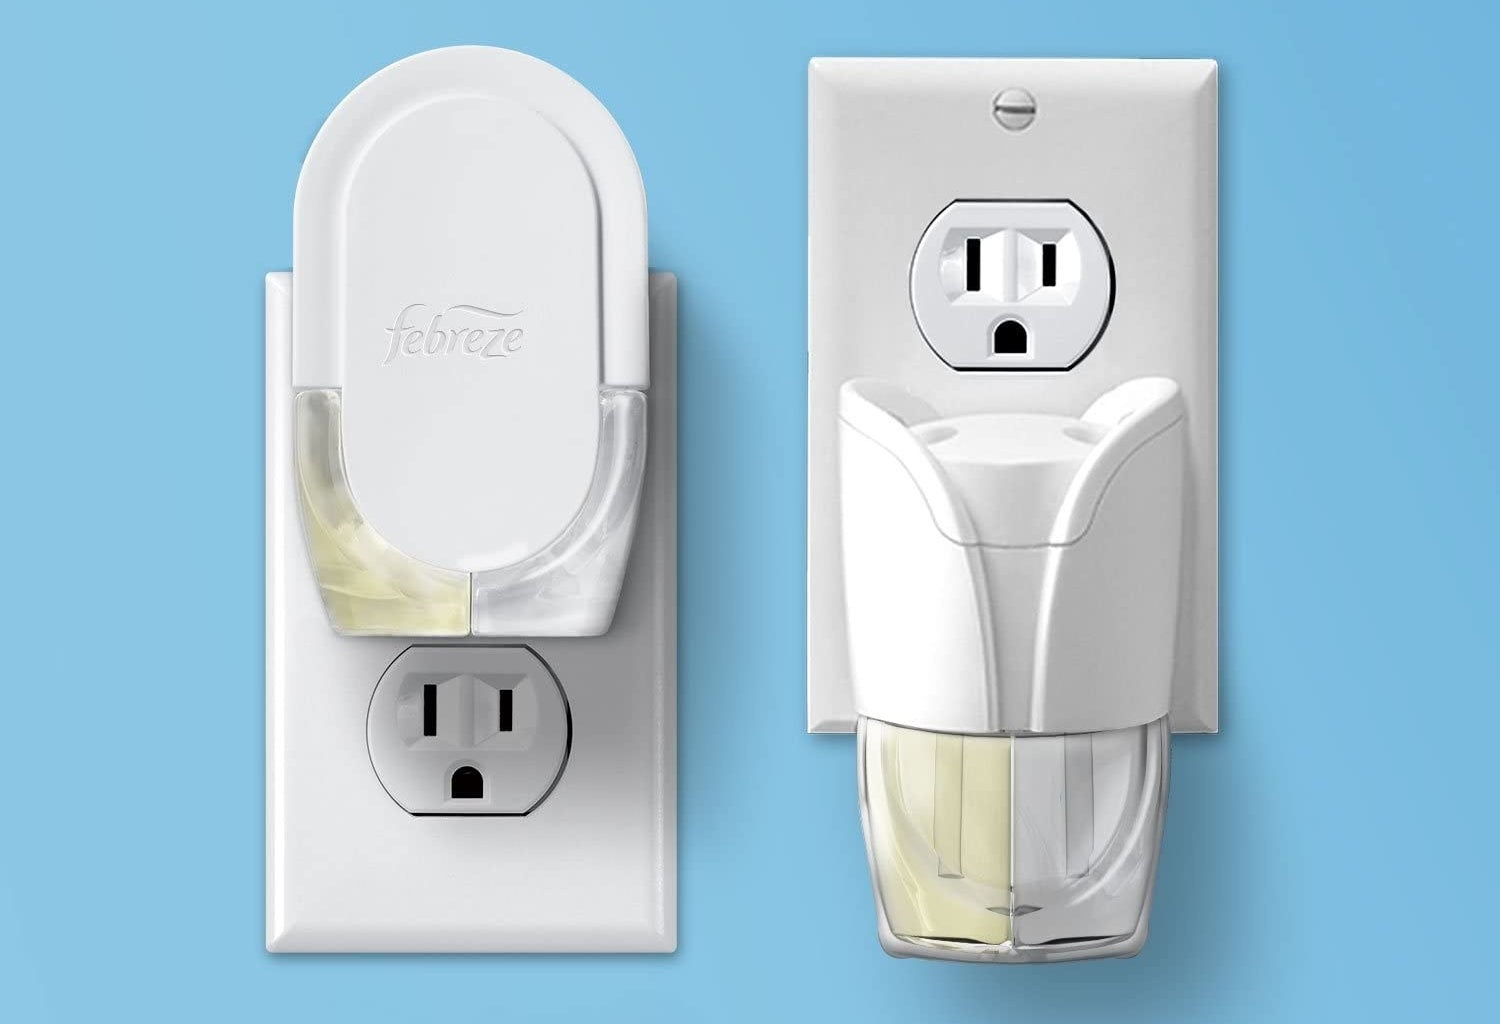 Two air freshening plug-ins plugged into outlets